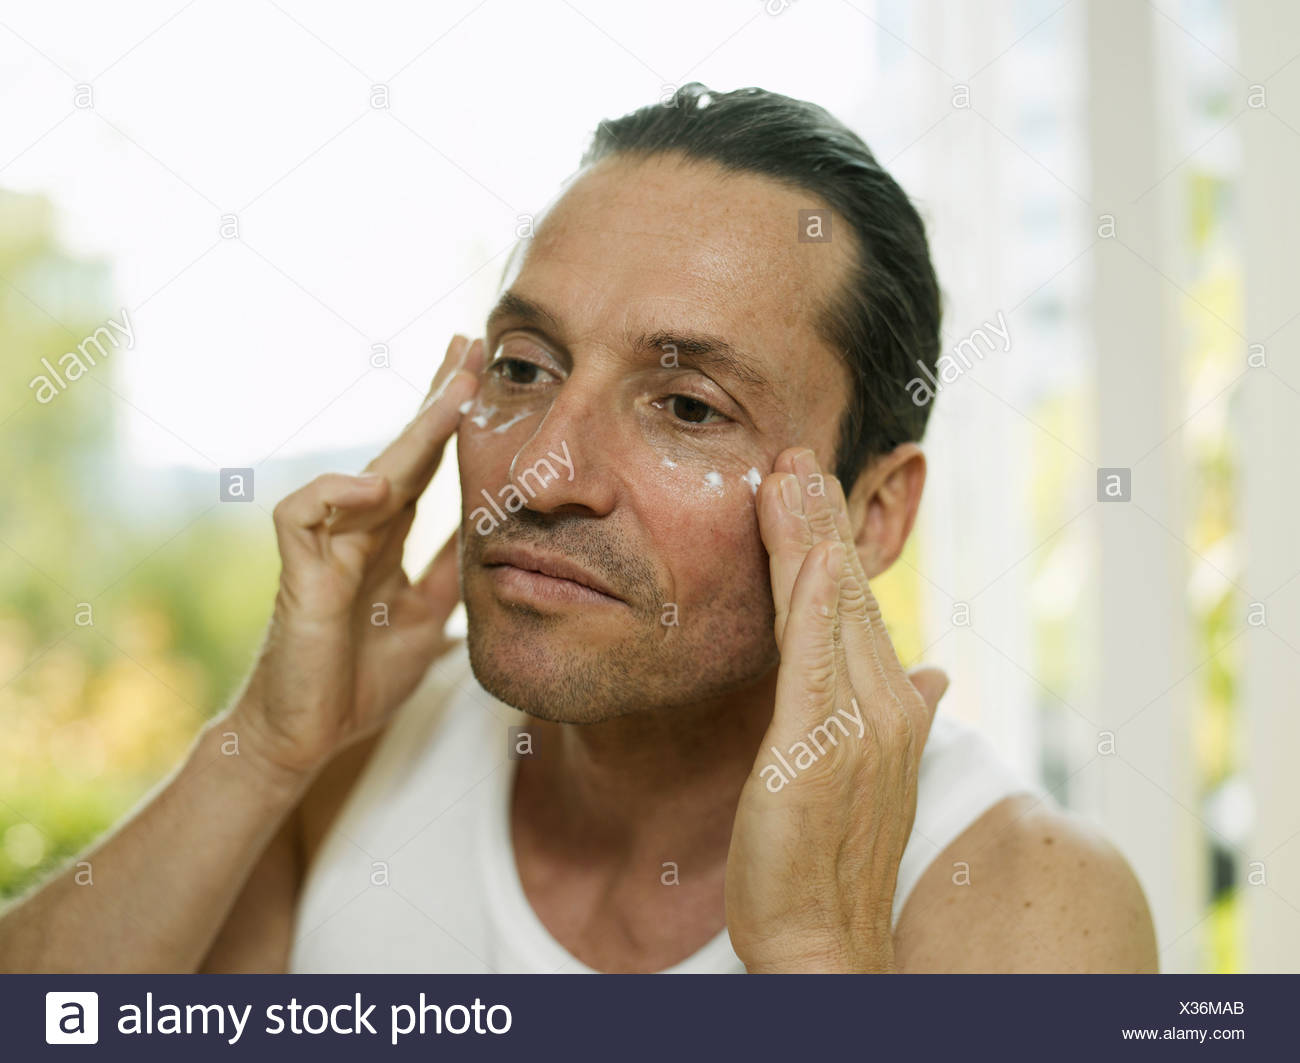 Man applying moisturizer to face - Stock Image